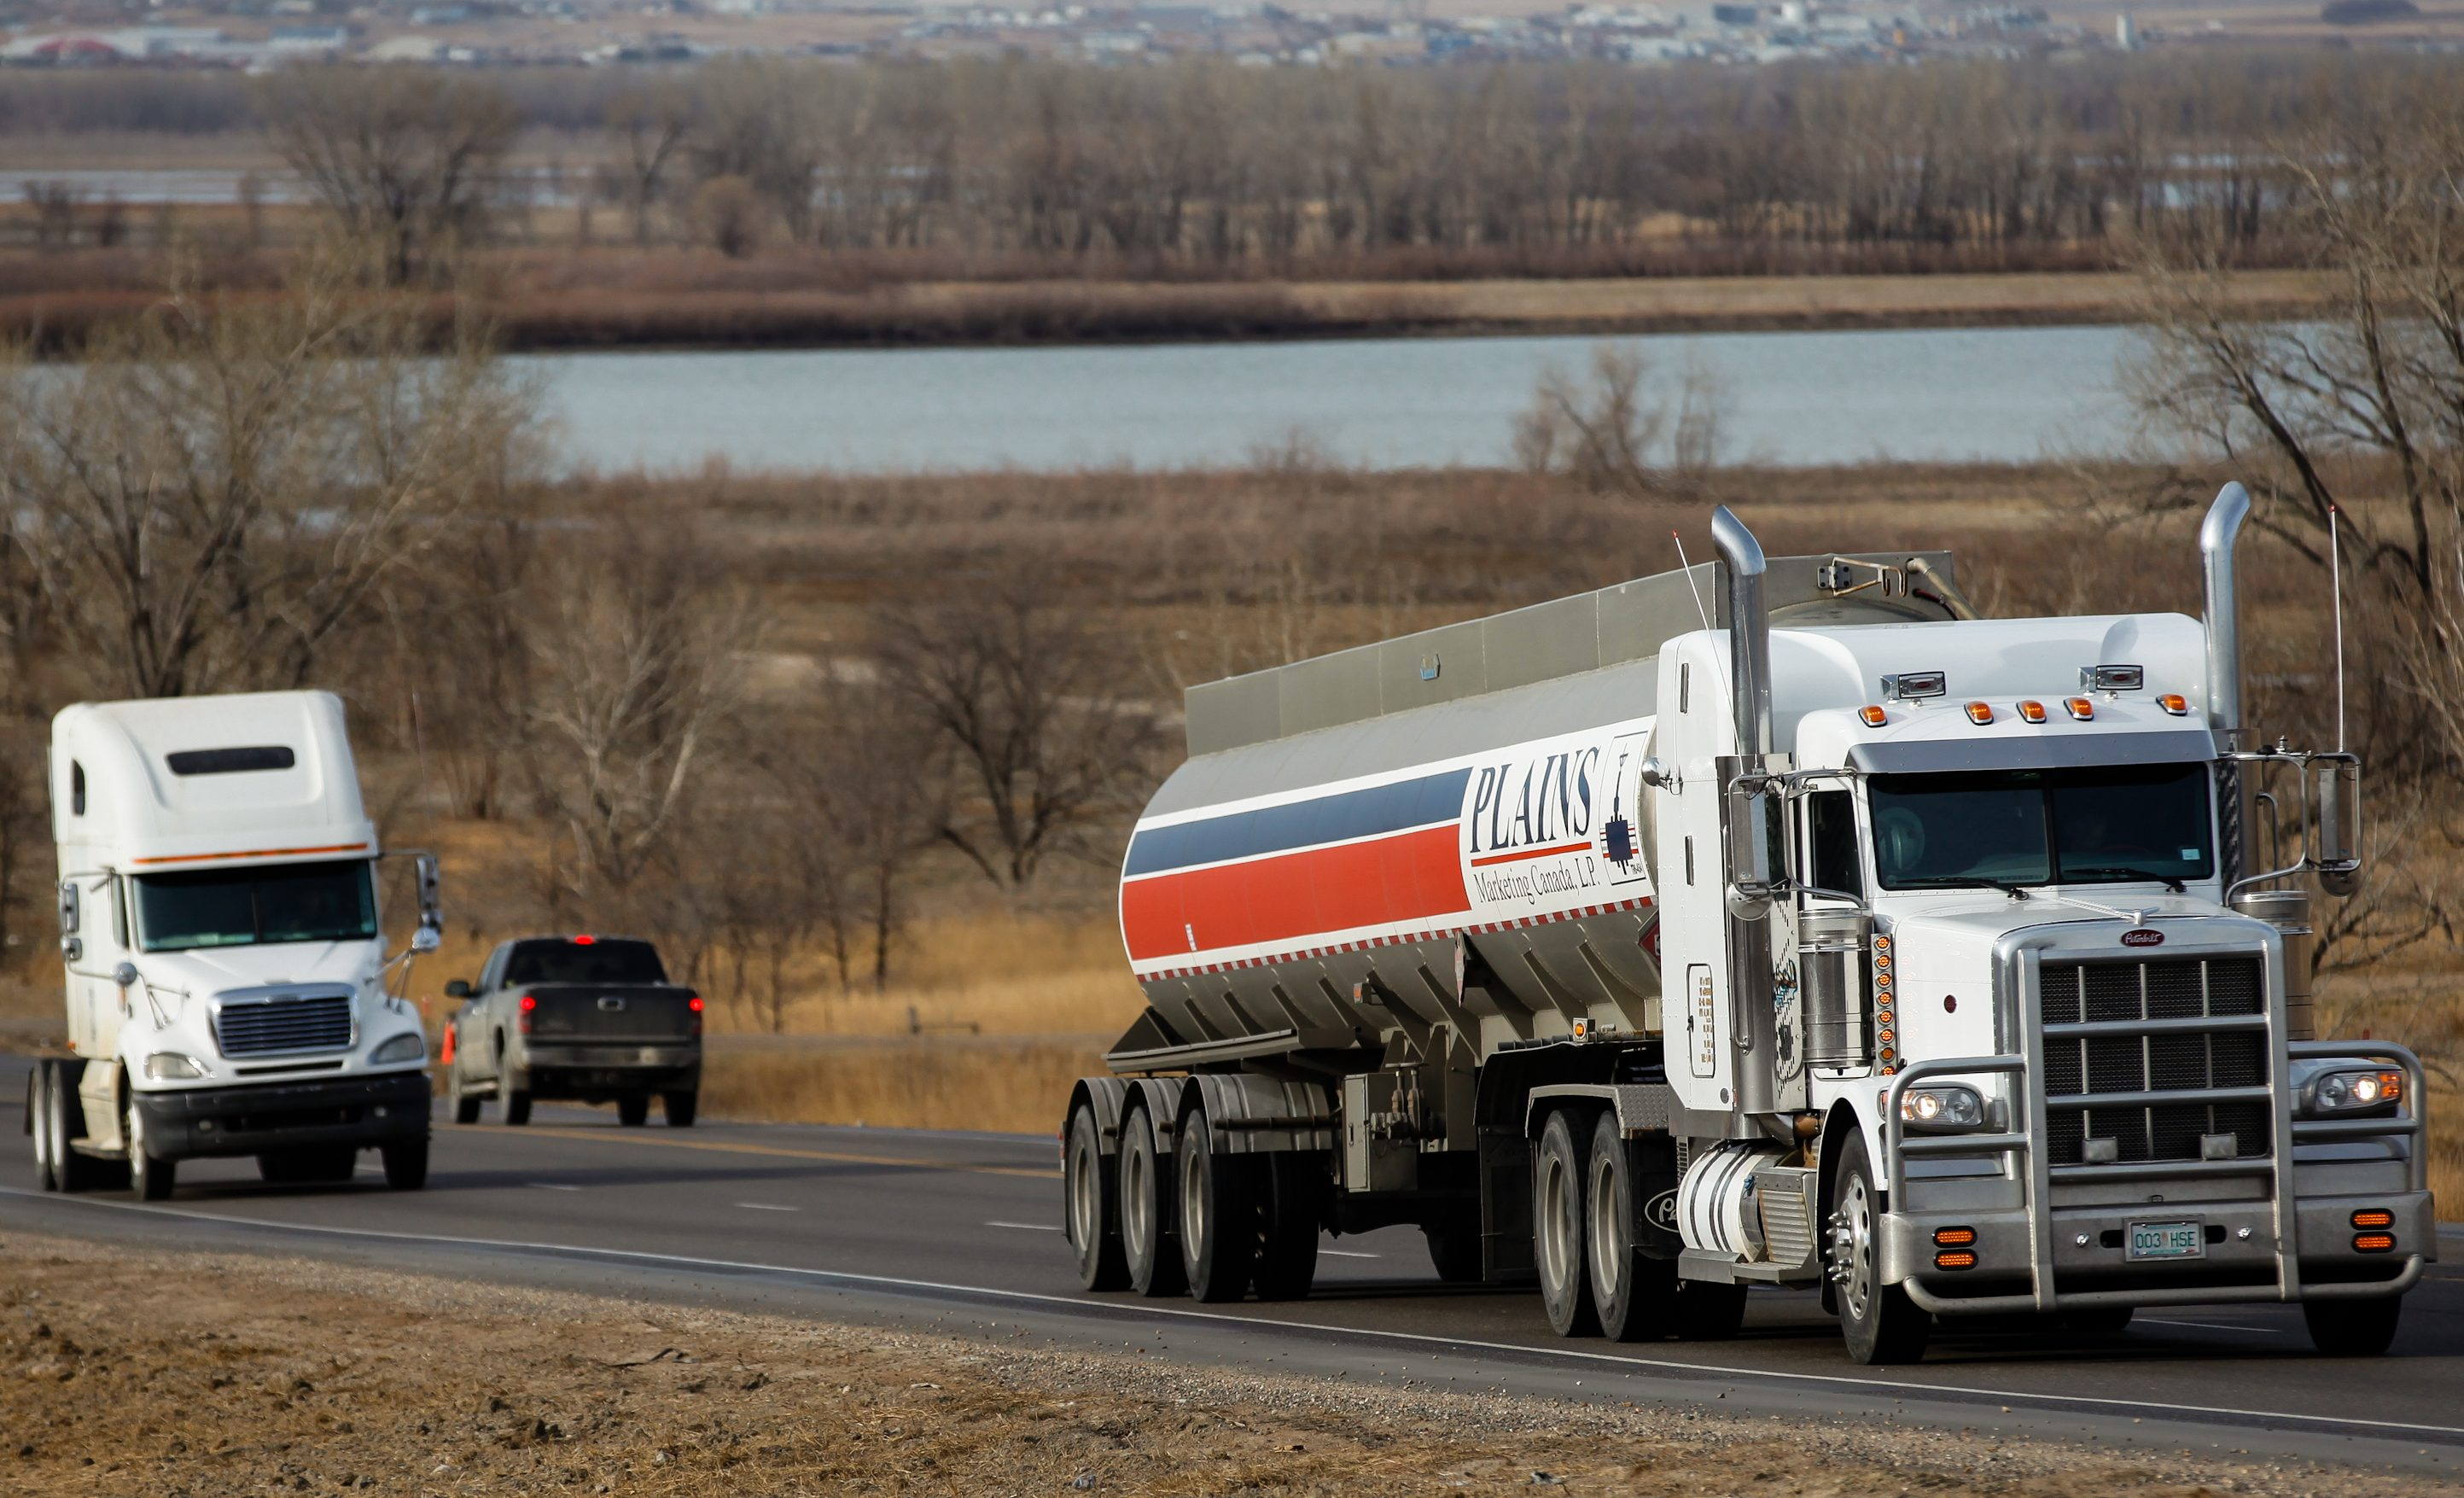 In this March 23, 2012, photo semi-trucks drive south on Highway 85 near Williston, N.D. Litter has become an escalating problem as the rush to tap vast caches of crude escalates in North Dakota. Some of the industrial rubbish blows in from unsecured truckloads, but for many, the most frustrating trash is the gallons of discarded urine. (AP Photo/Elijah Nouvelage)